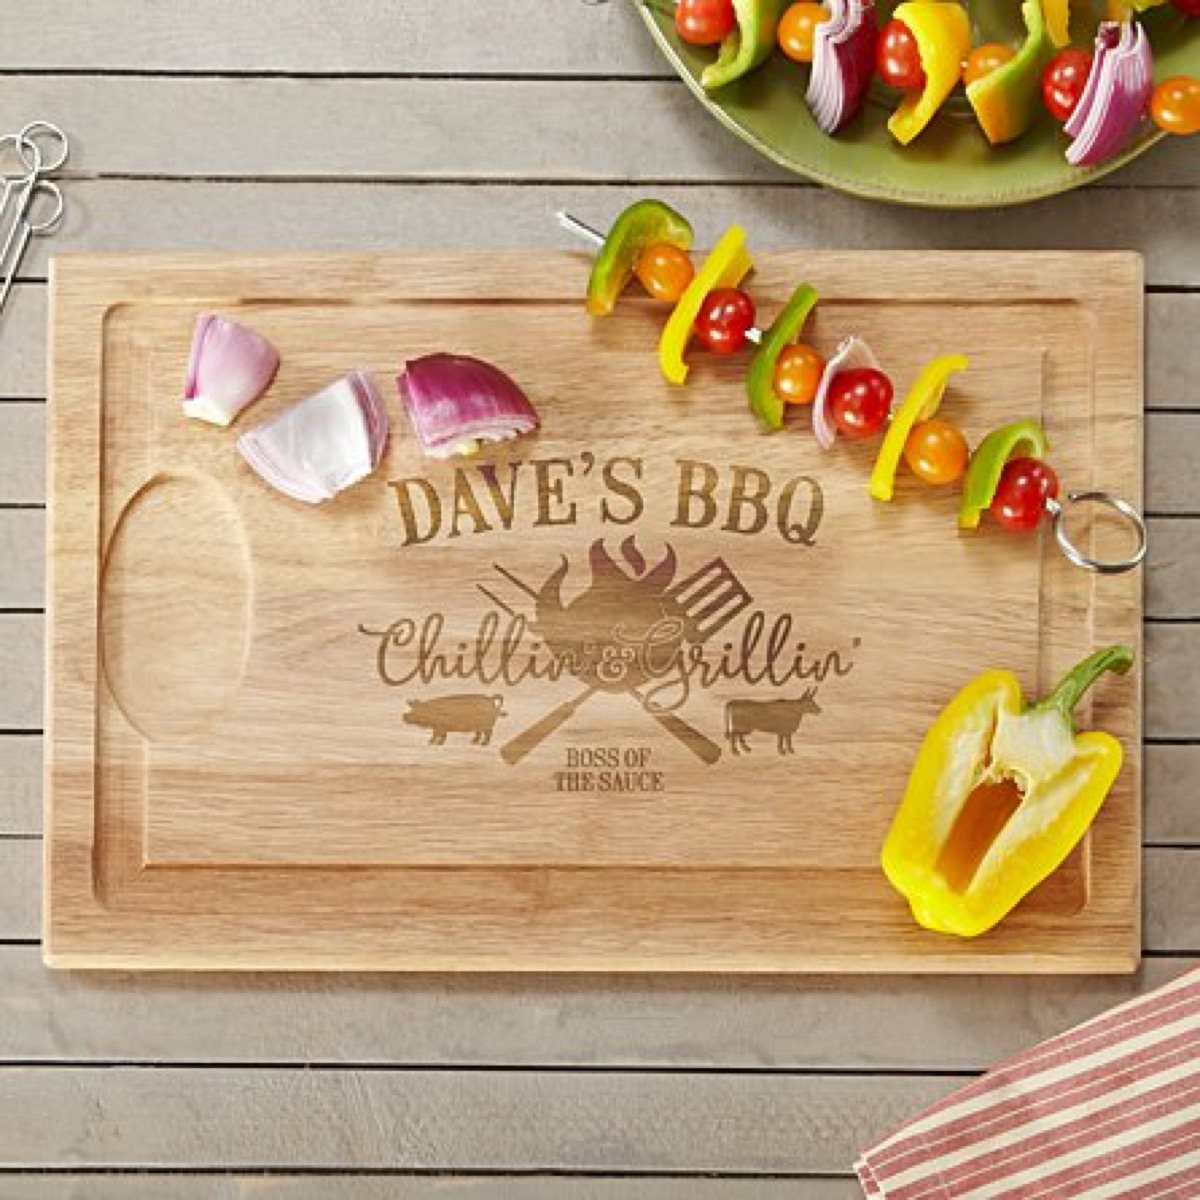 customized wooden cutting board, best friend gifts